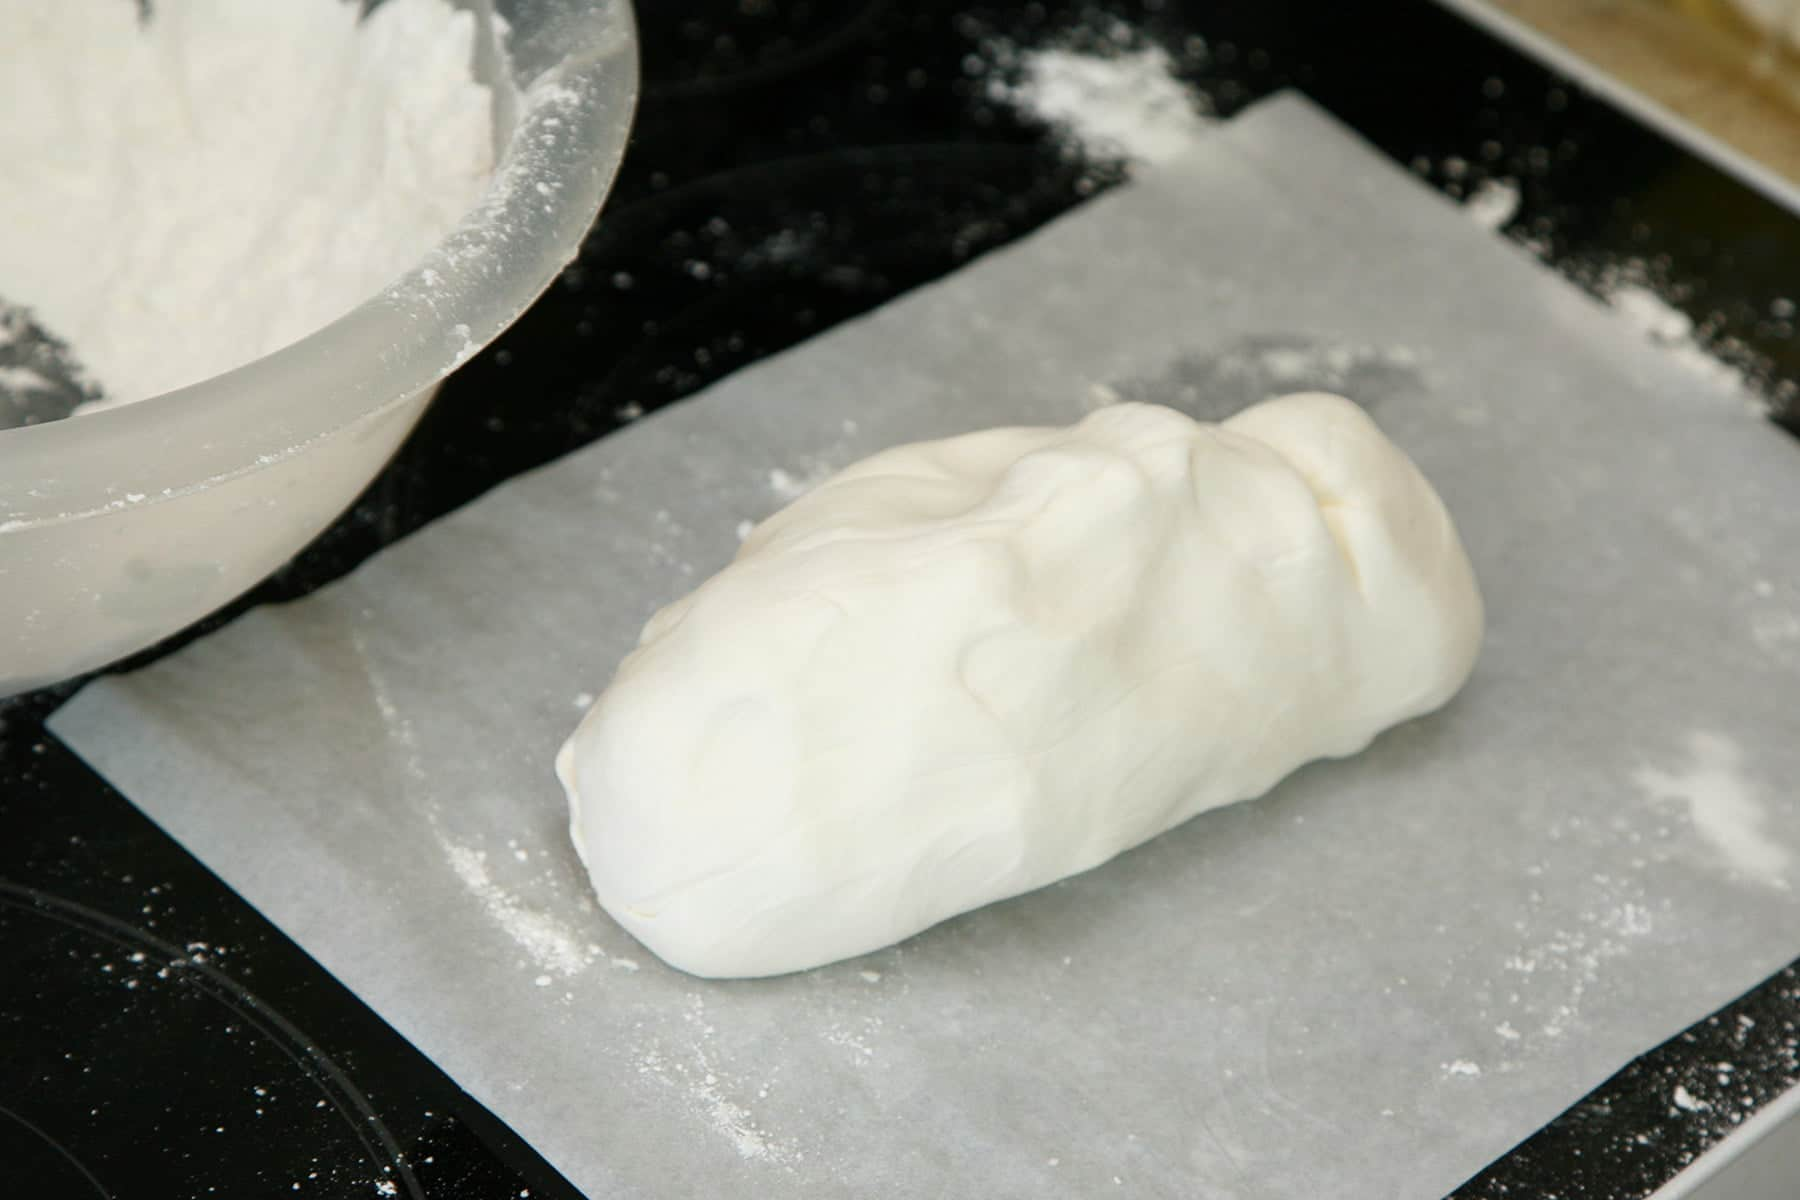 A log of smooth, white marshmallow fondant rests on a piece of parchment paper.